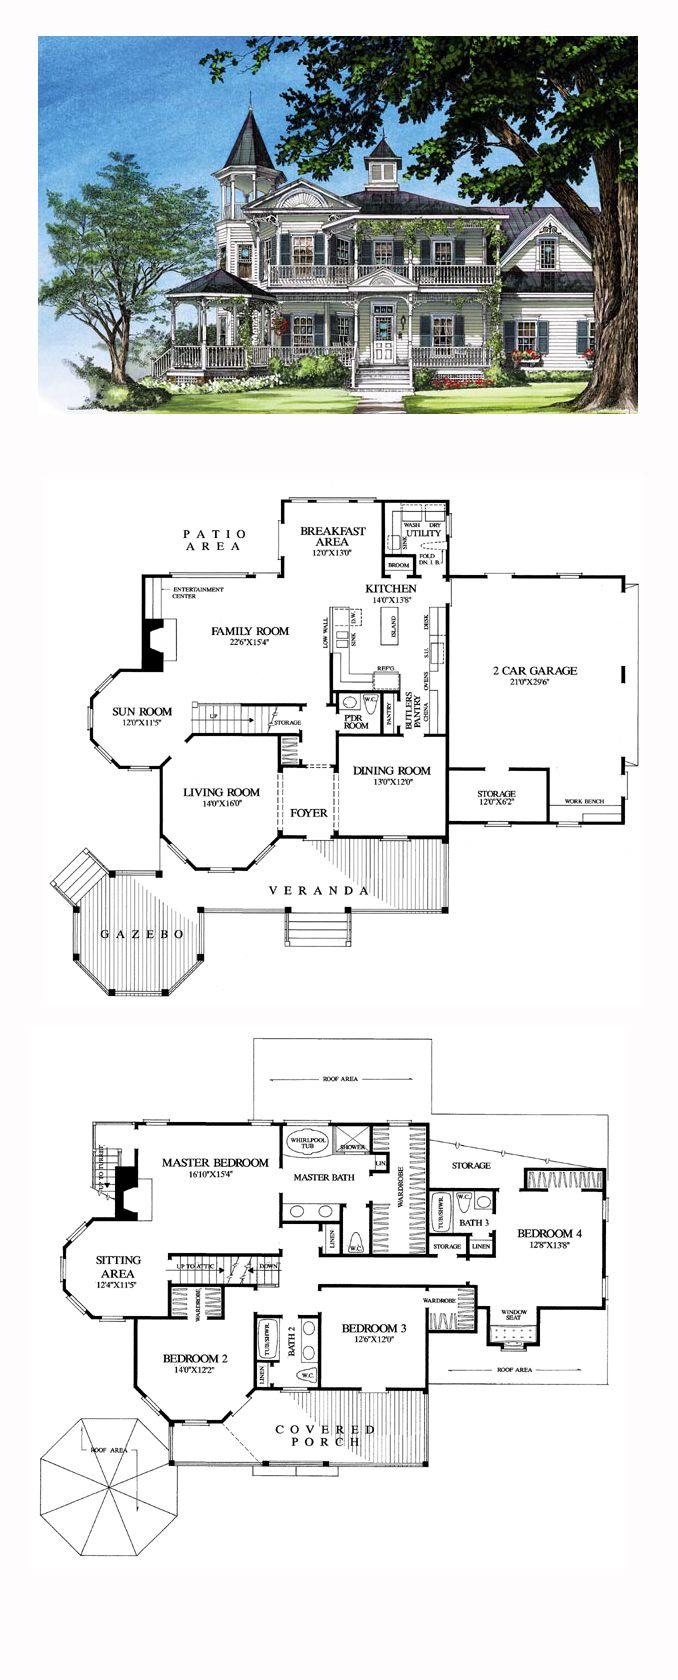 Best 20 practical magic house ideas on pinterest for Practical house plans